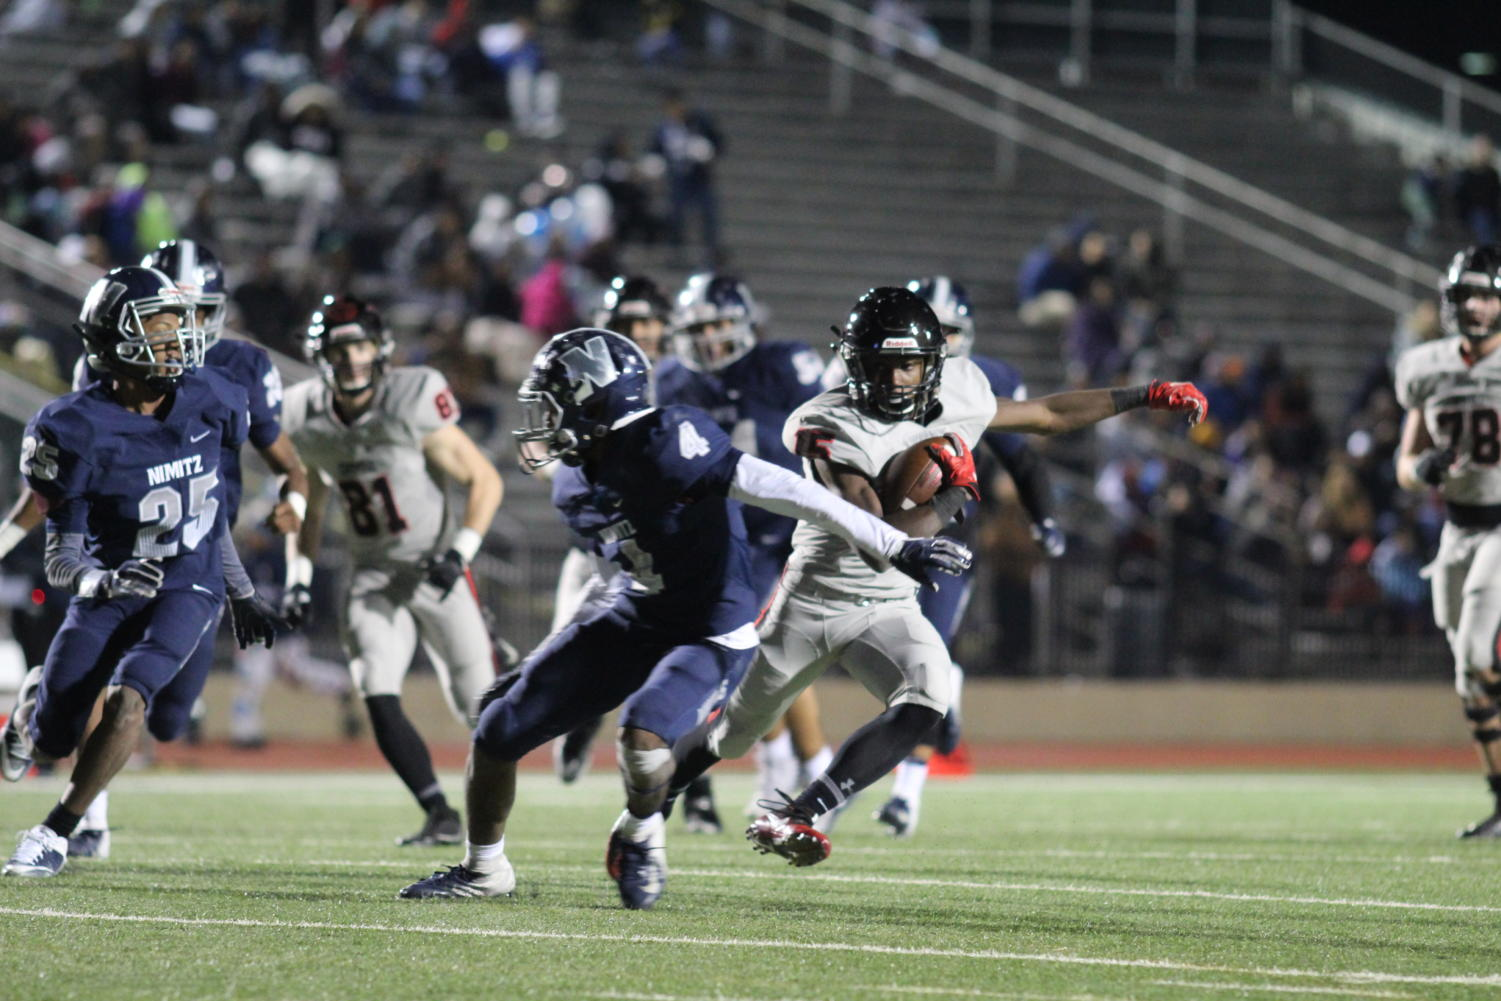 Coppell sophomore running back Jason Ngwu evades defenders against Irving Nimitz at Joy & Ralph Ellis Stadium last Friday. The Cowboys play again tomorrow against Carroll at 2 p.m. at Dragon Stadium in Southlake.